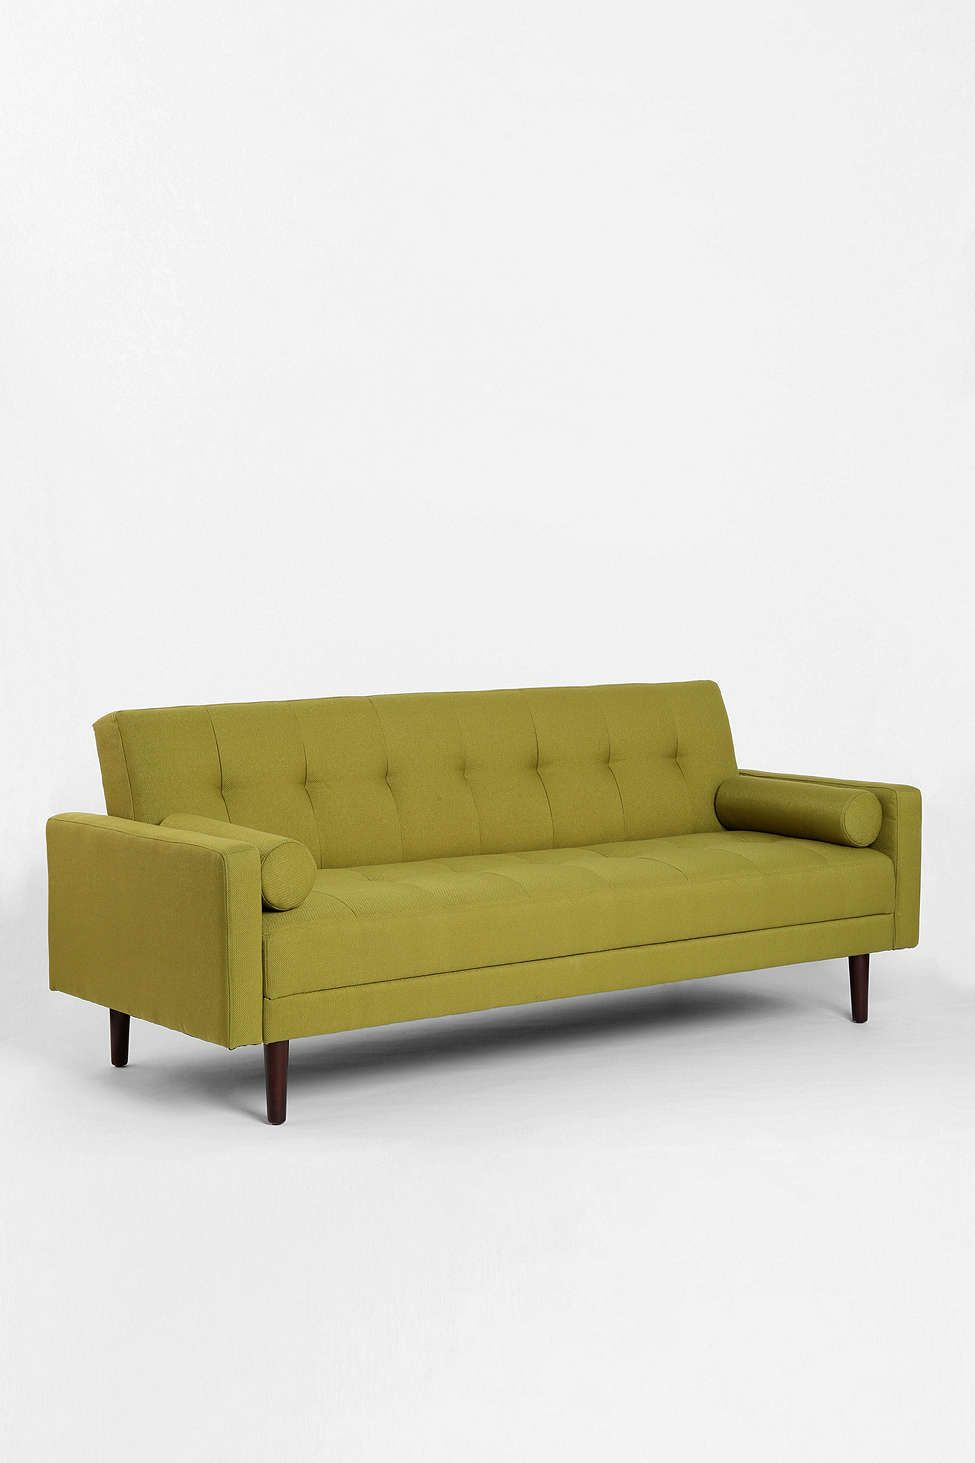 Sofas And Stuff Fentbury Night And Day Convertible Sofa Do Want Sofa Apartment